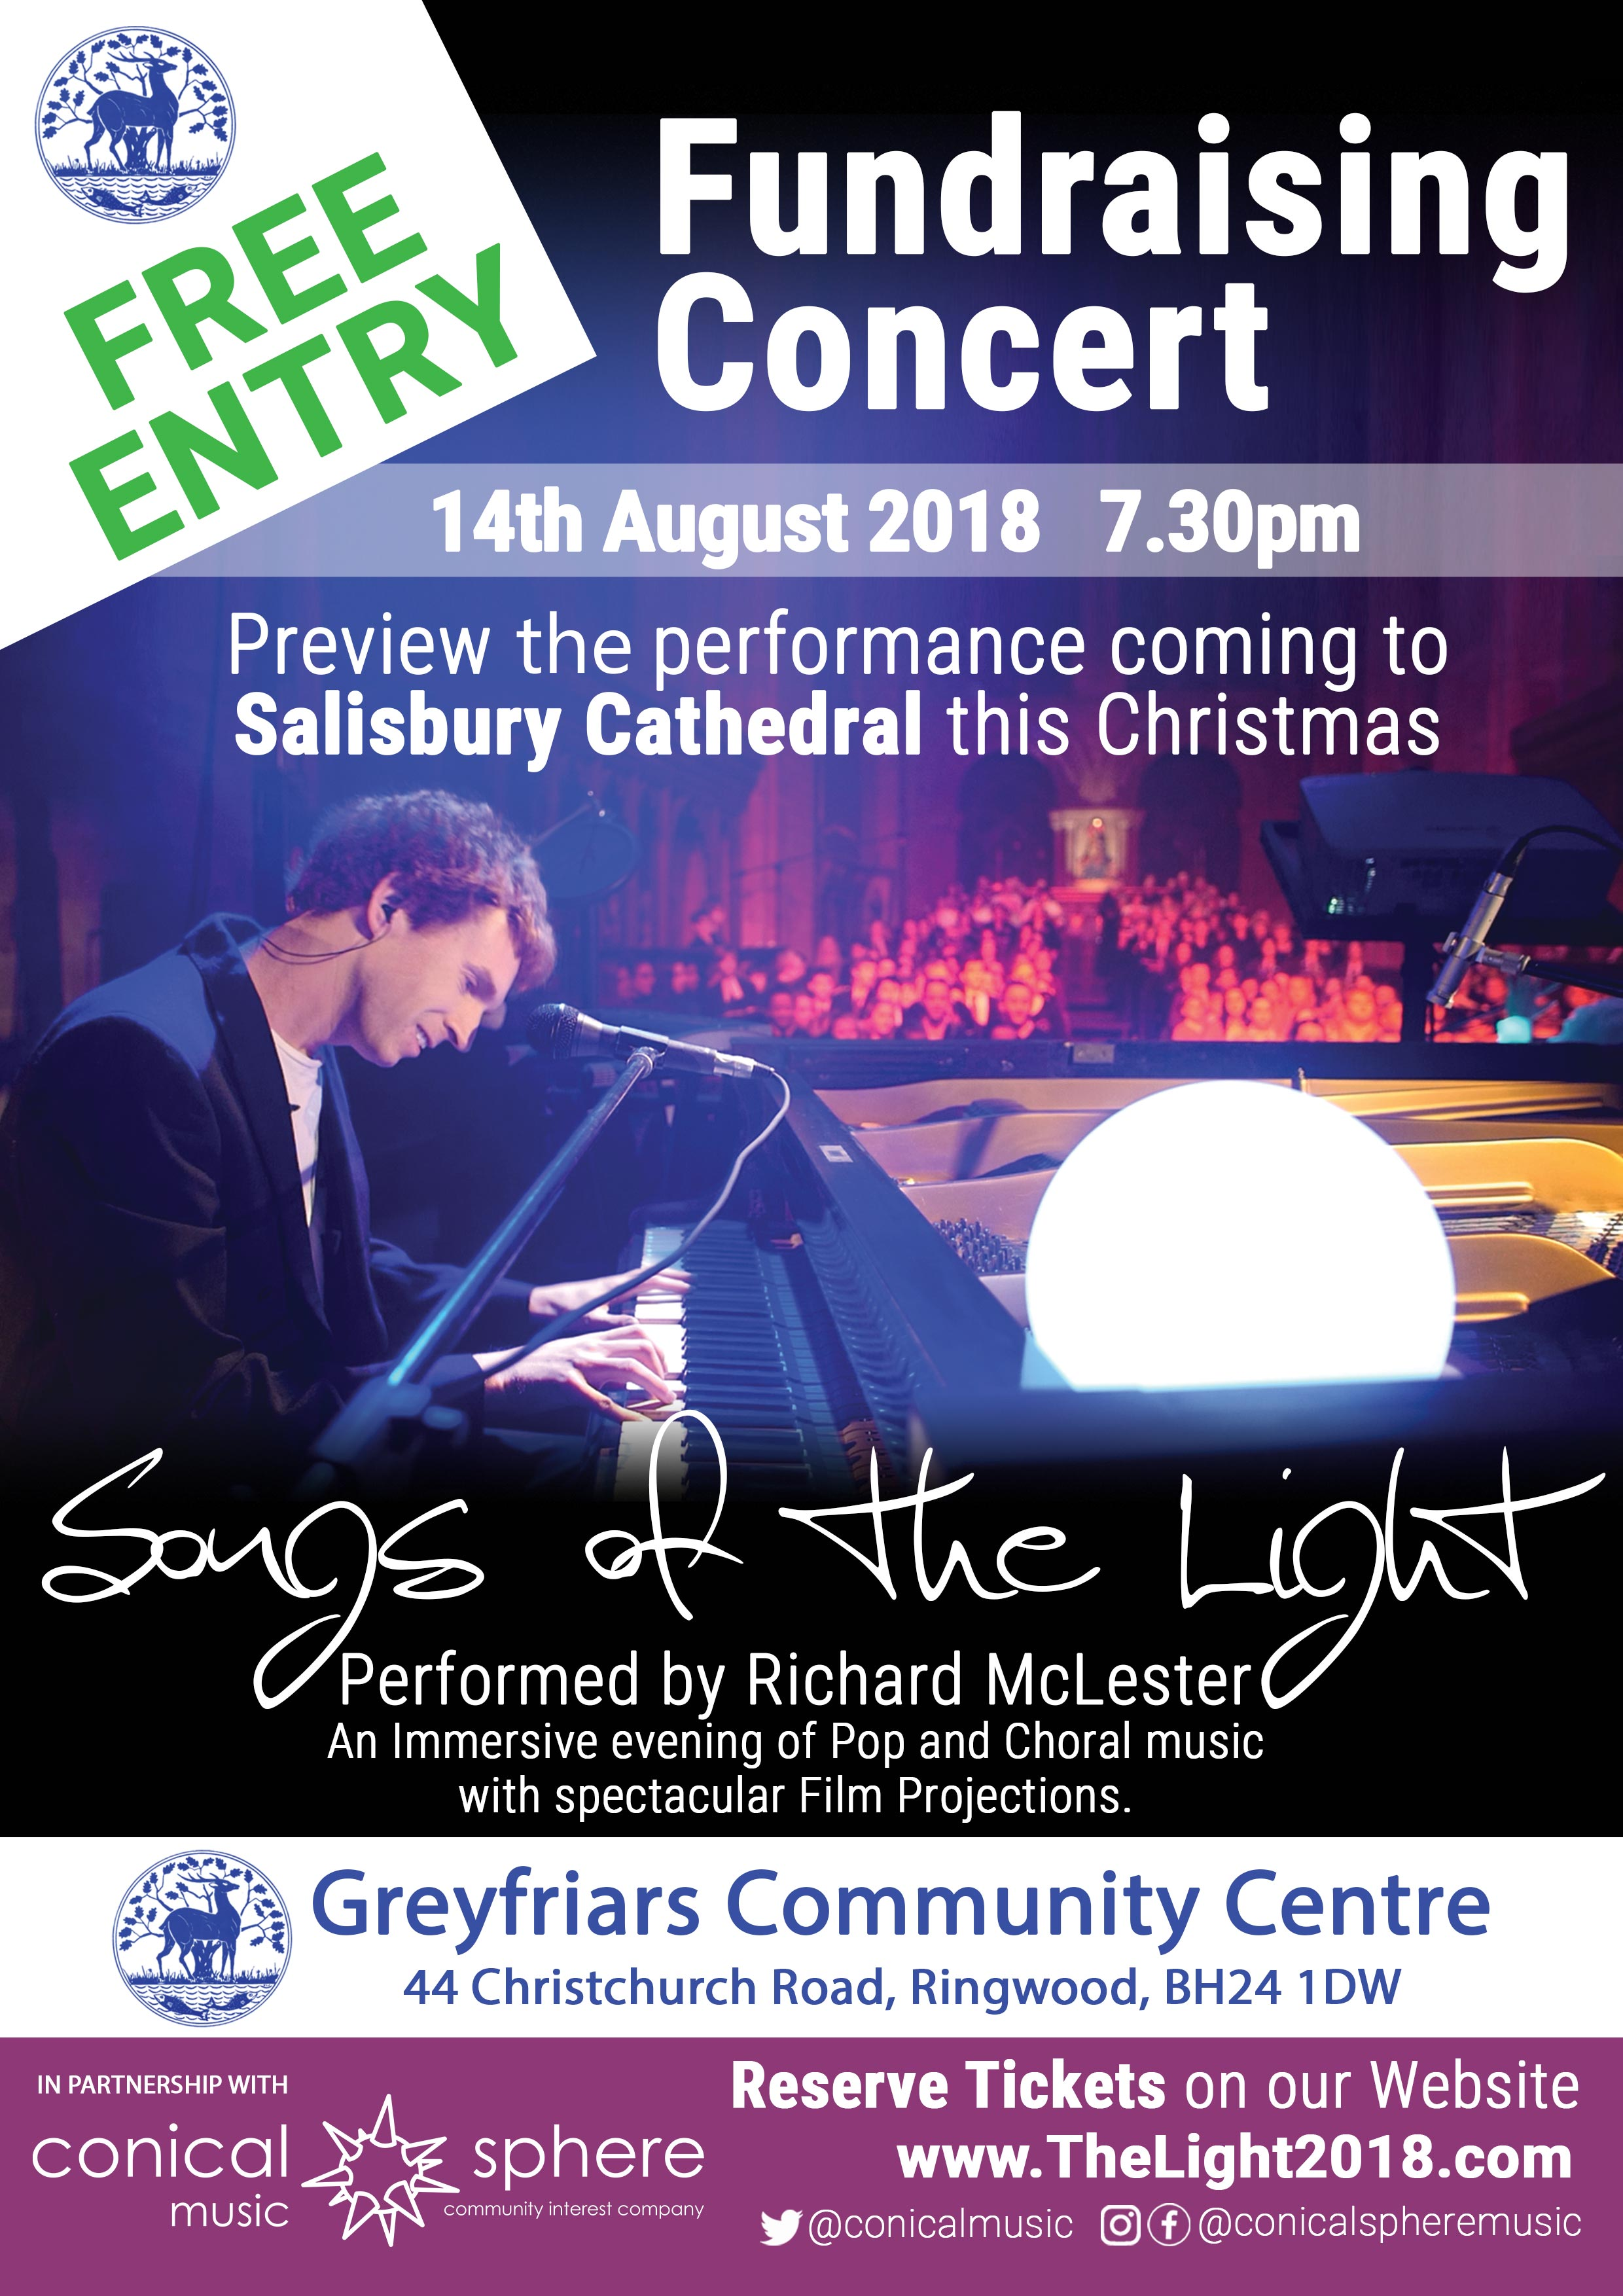 Songs of The Light Performance